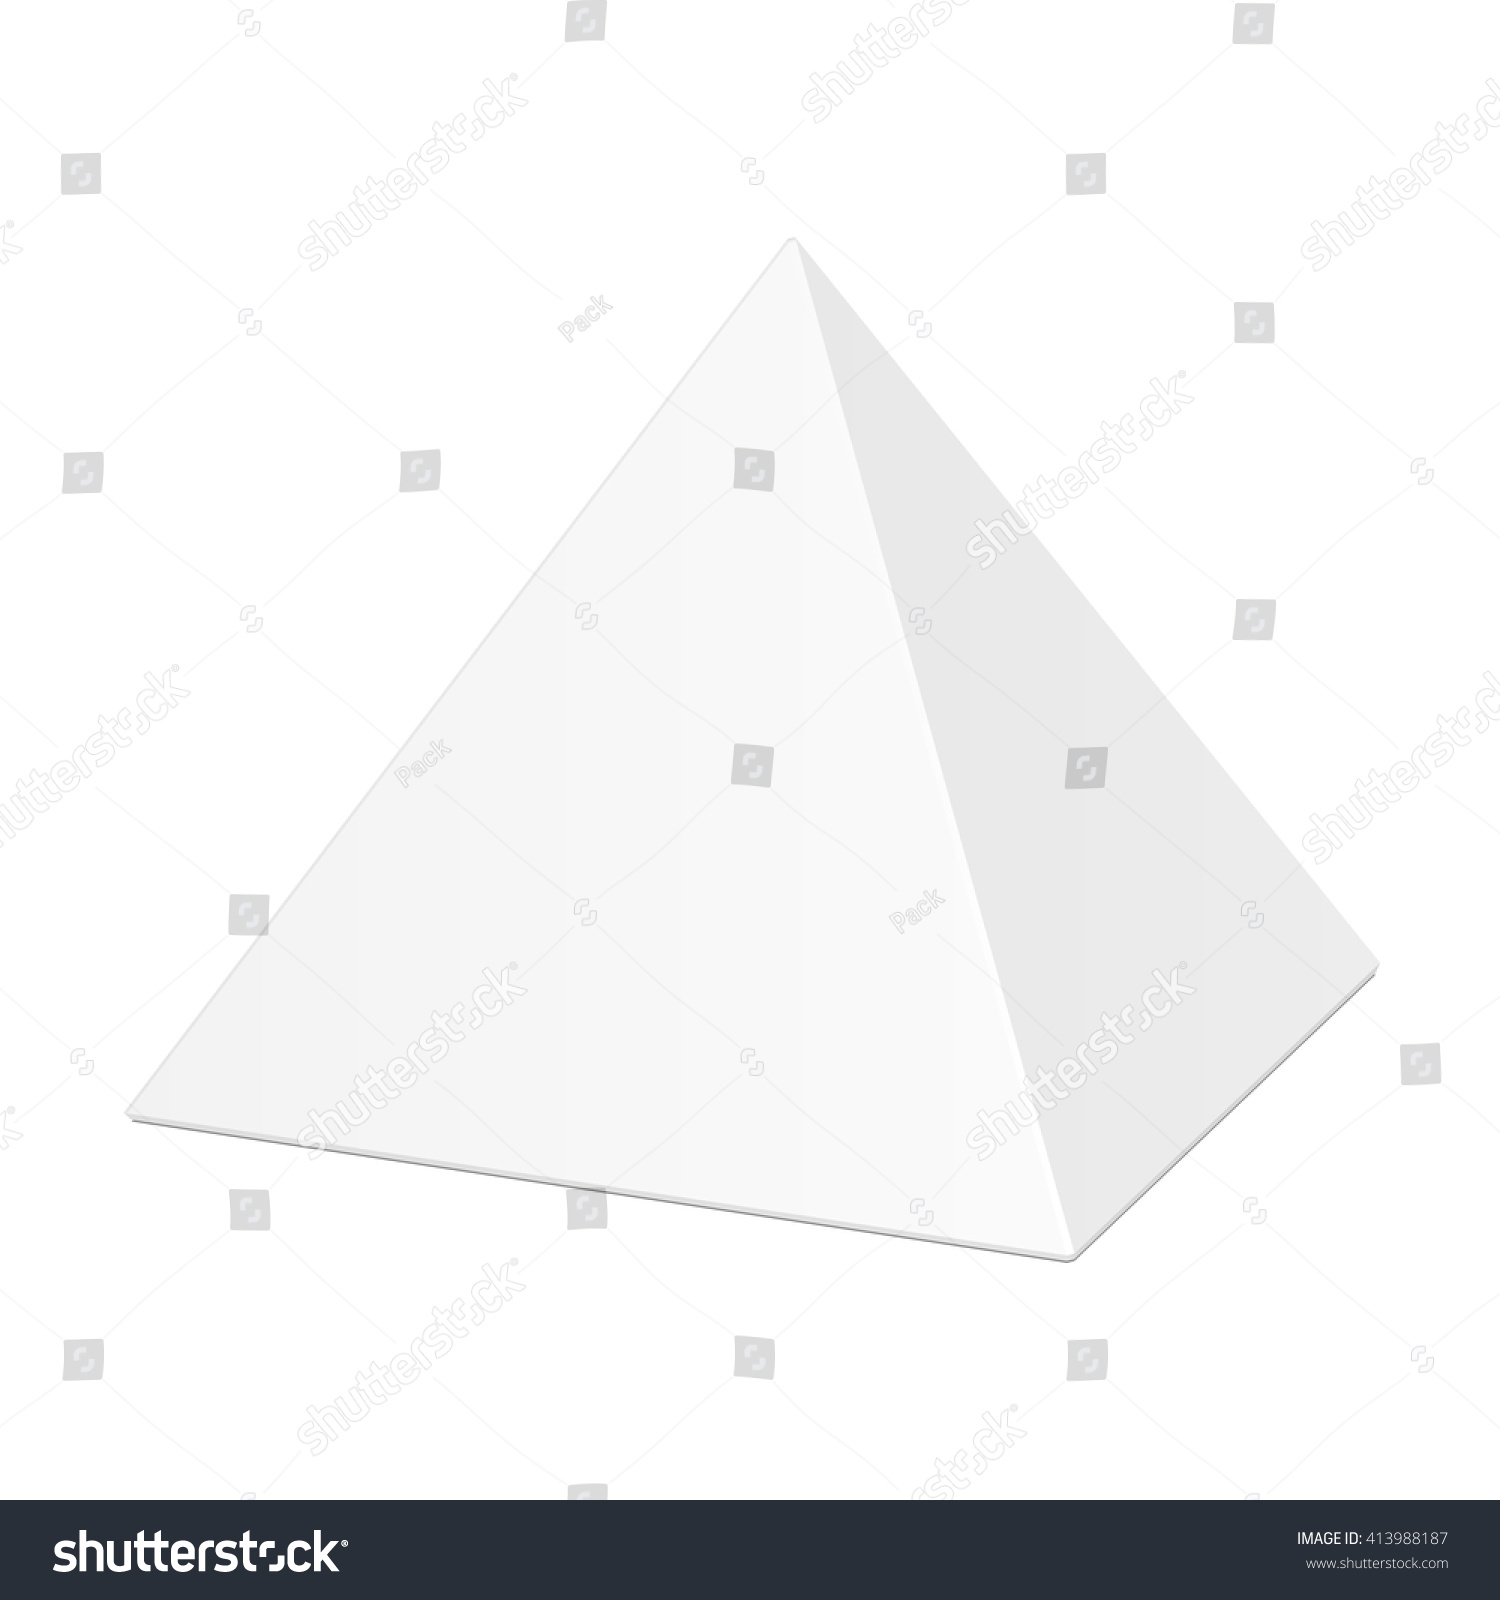 White Cardboard Pyramid Triangle Box Packaging For Food Gift Or Other Products Illustration Isolated